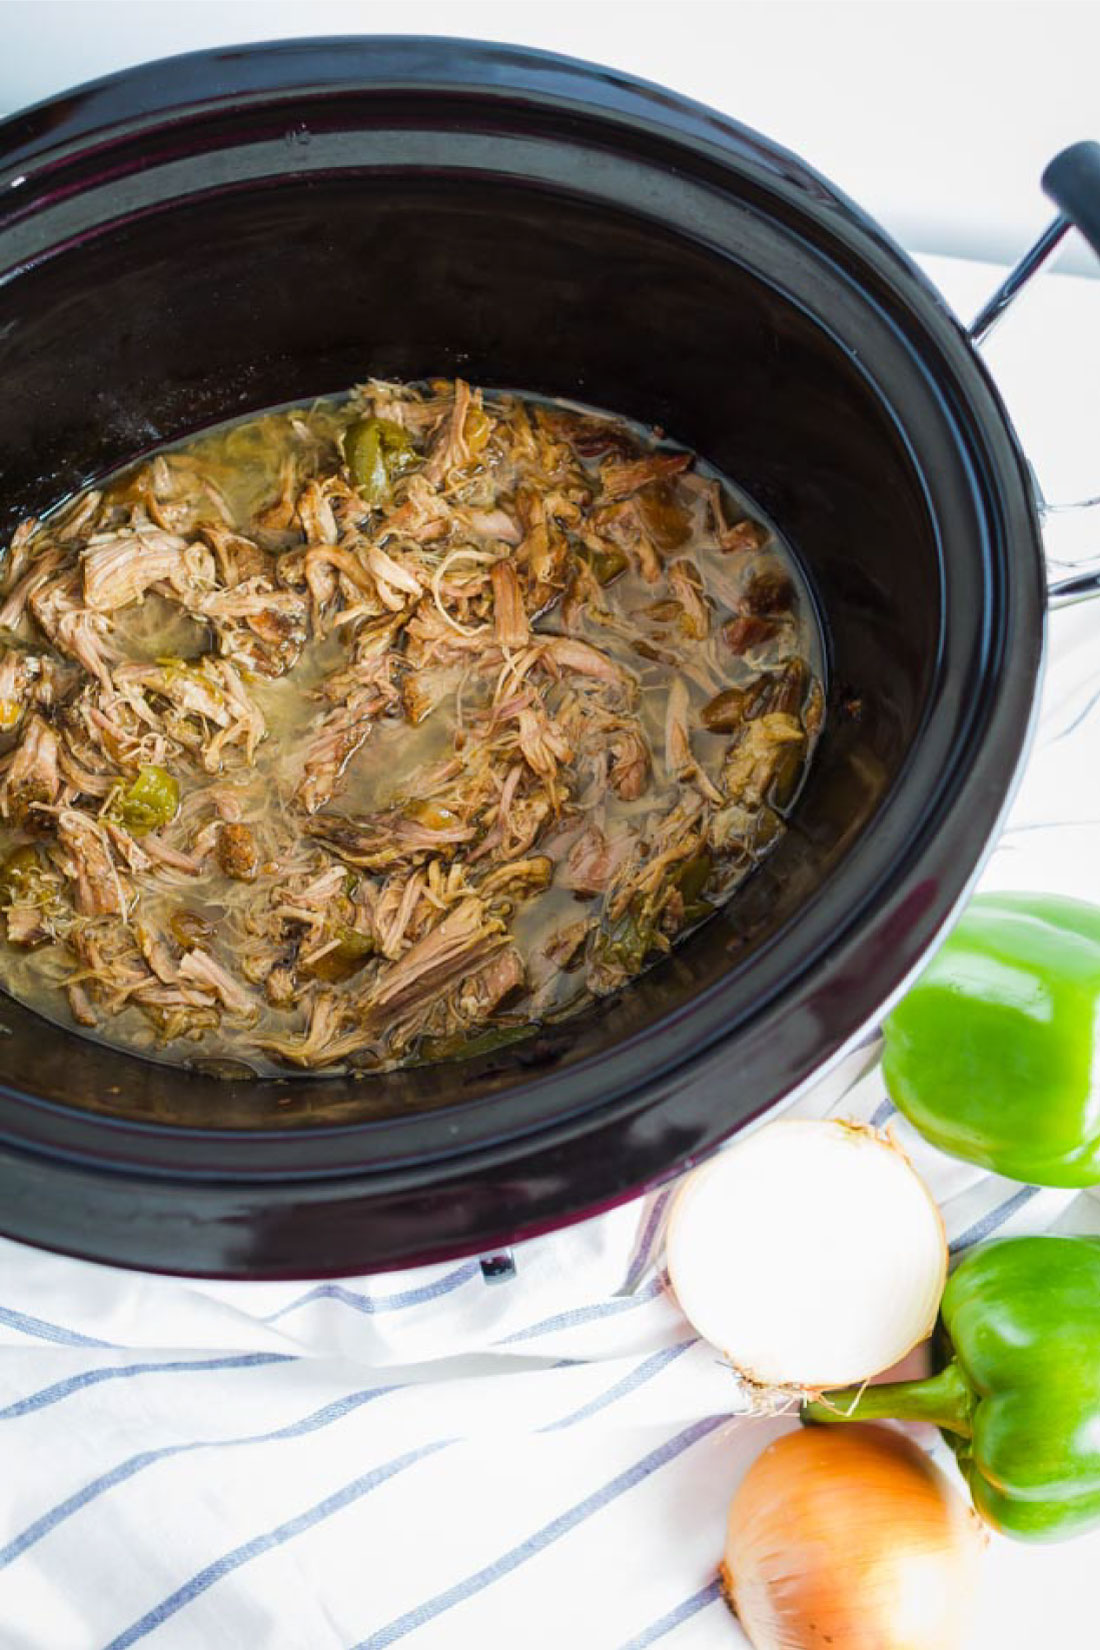 Food: Slow Cooker Pulled Pork - make this super easy dinner recipe and use it in a variety of ways! Step1- putting everything in the crockpot.